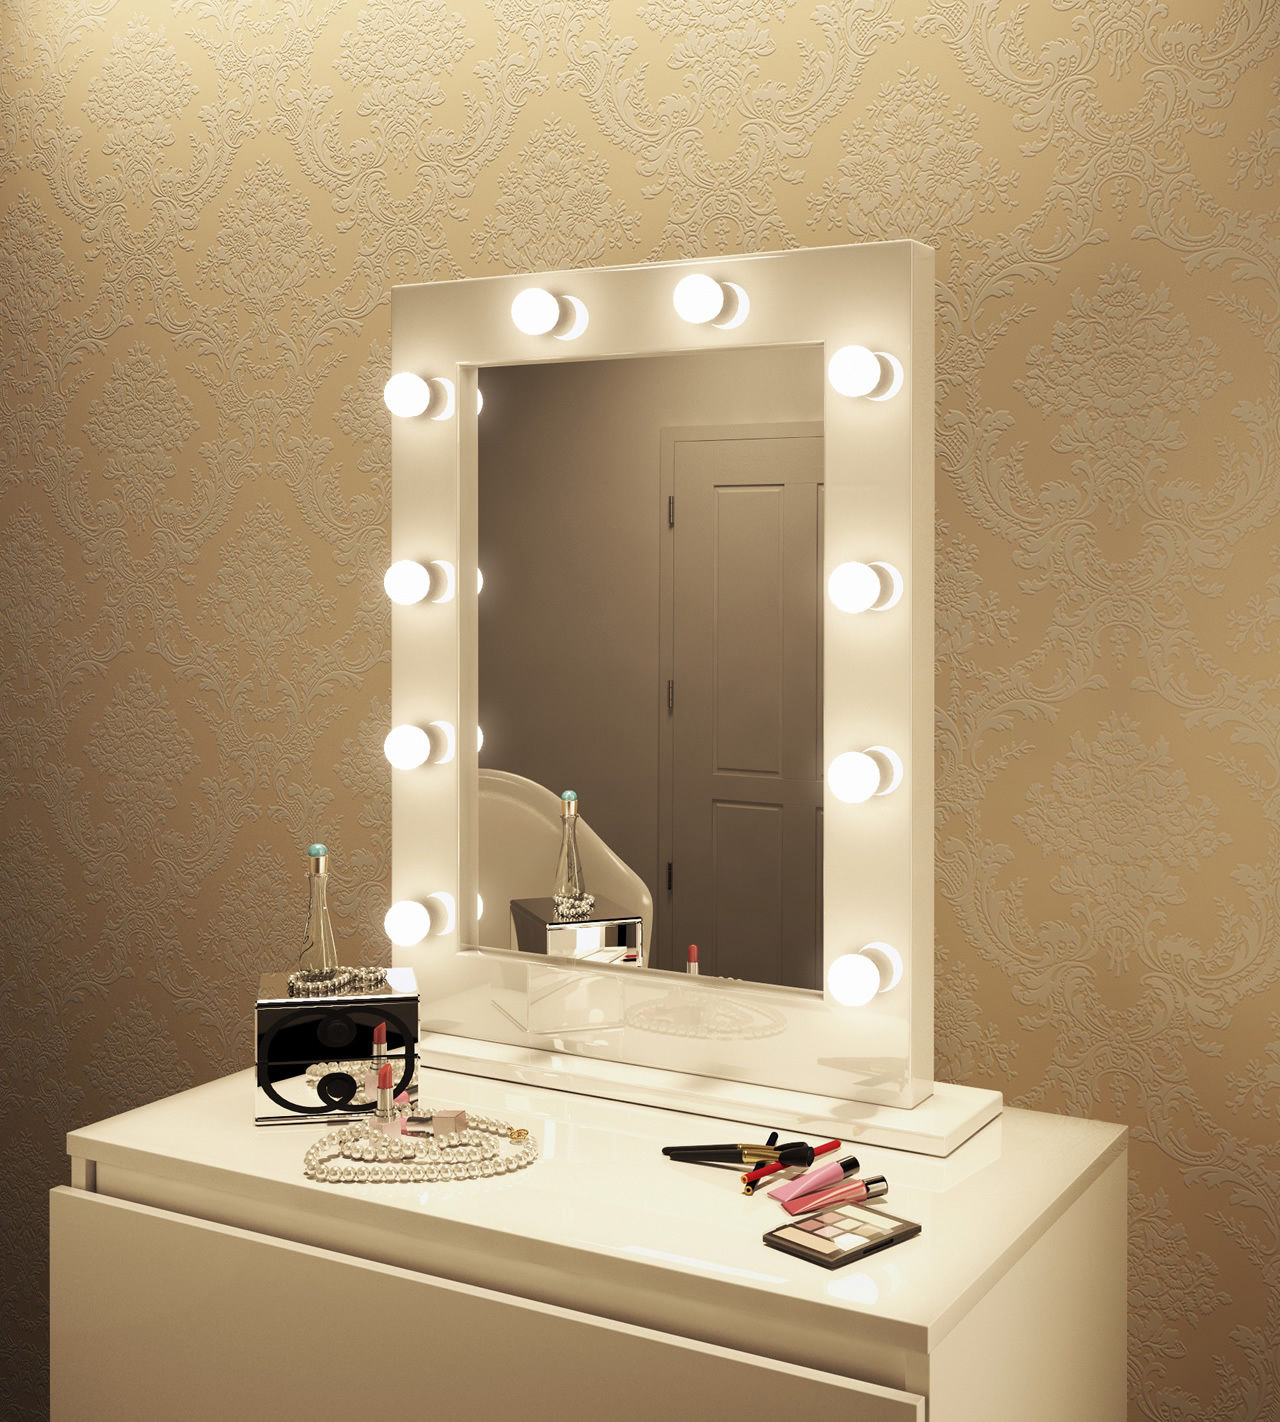 Mirrors hollywood vanity mirror with lights for best vanity room cheap vanity mirror with lights lighted makeup vanity hollywood vanity mirror with lights aloadofball Image collections